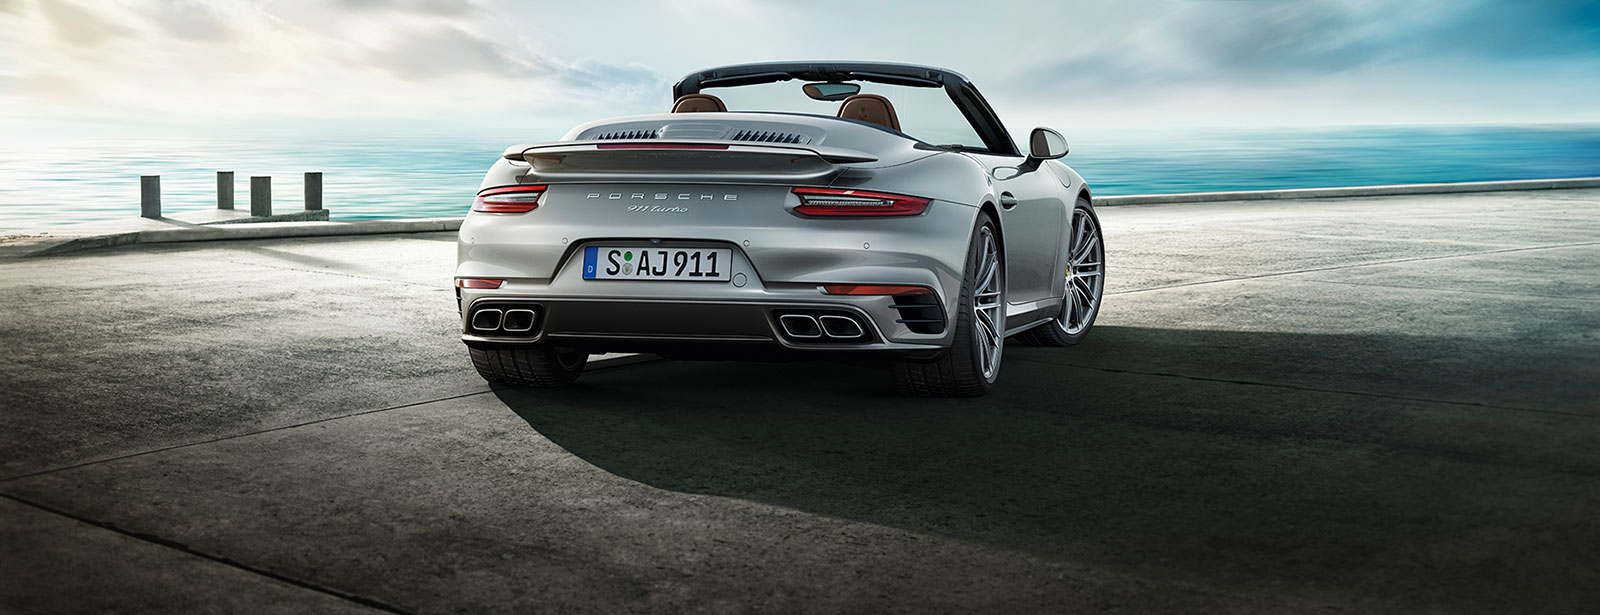 Новий 911 Turbo Cabriolet